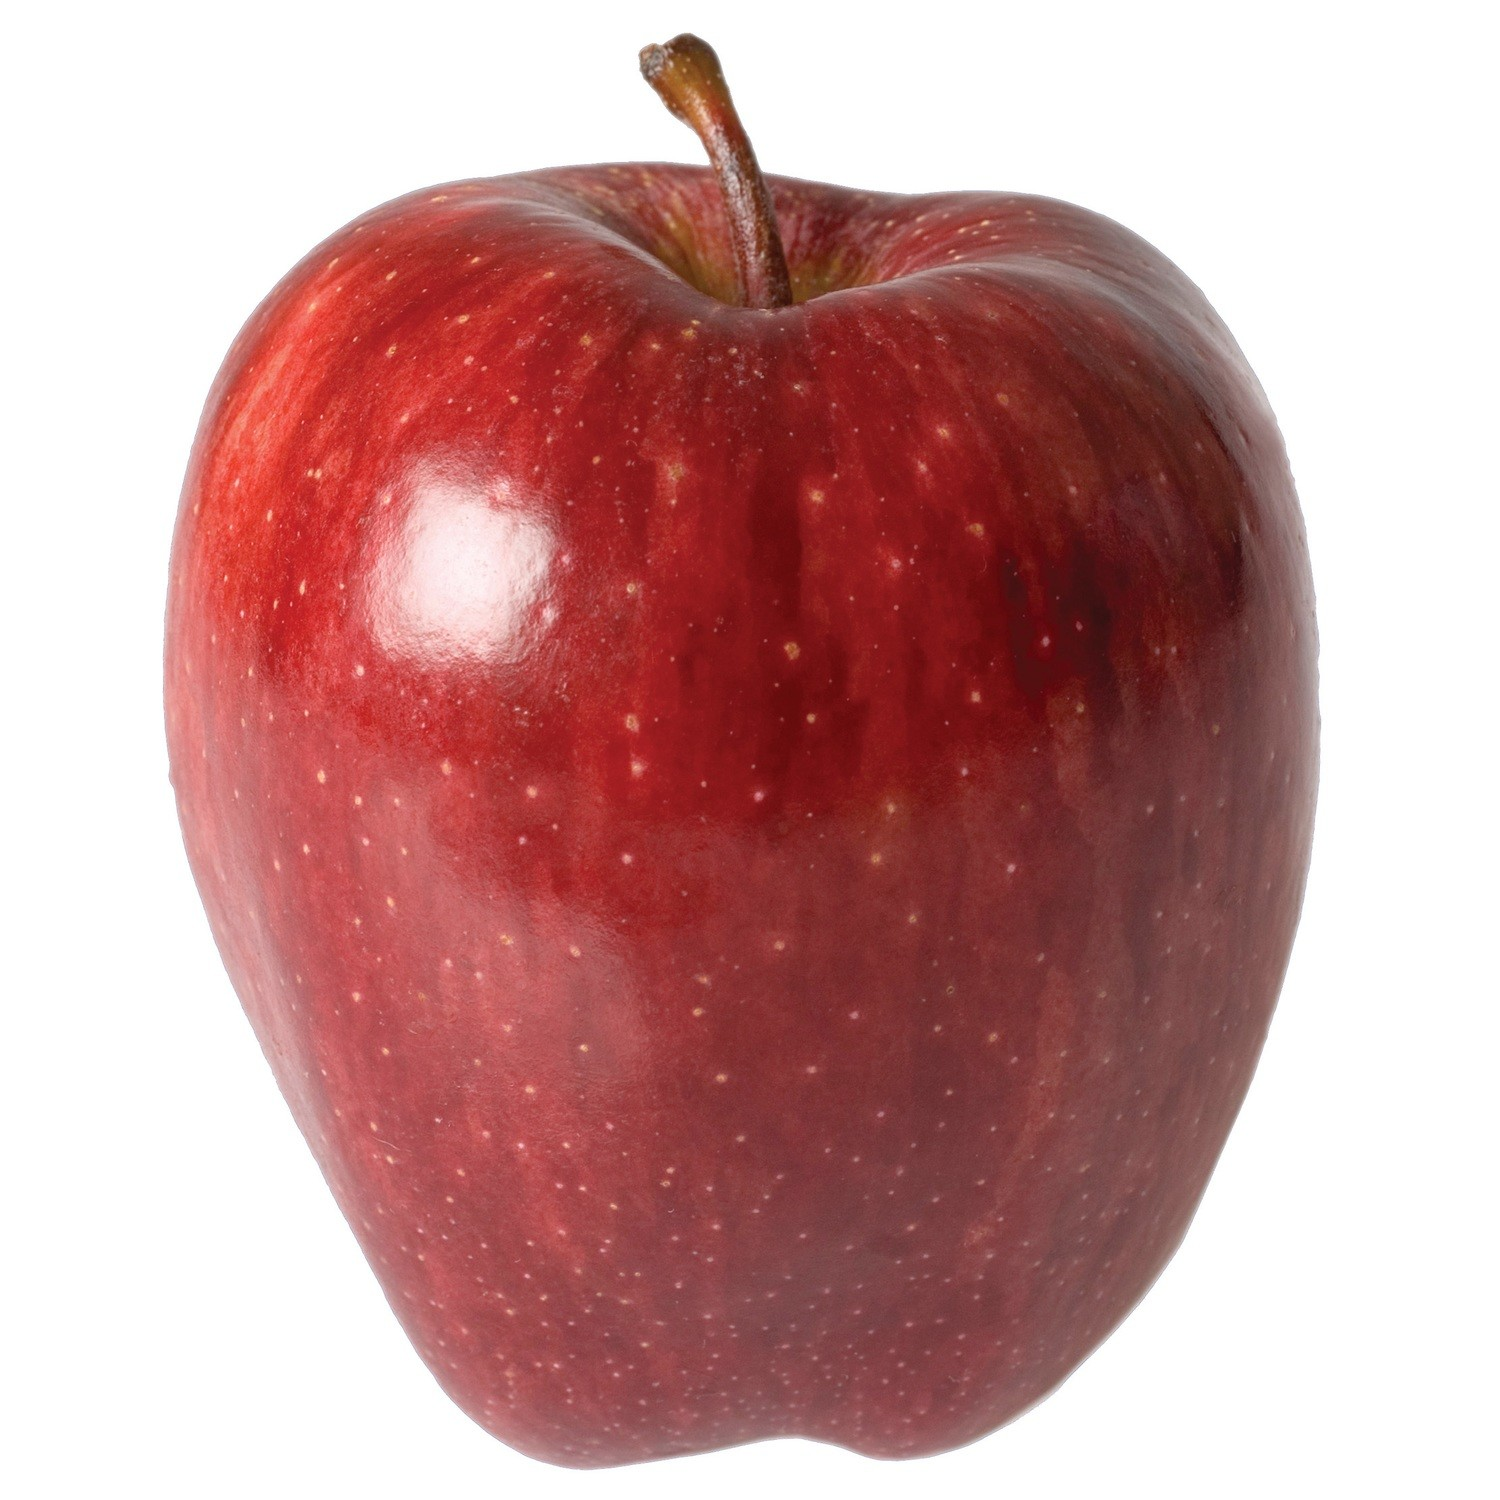 Fresh Apples, Small Red Delicious Apples (Priced Each)